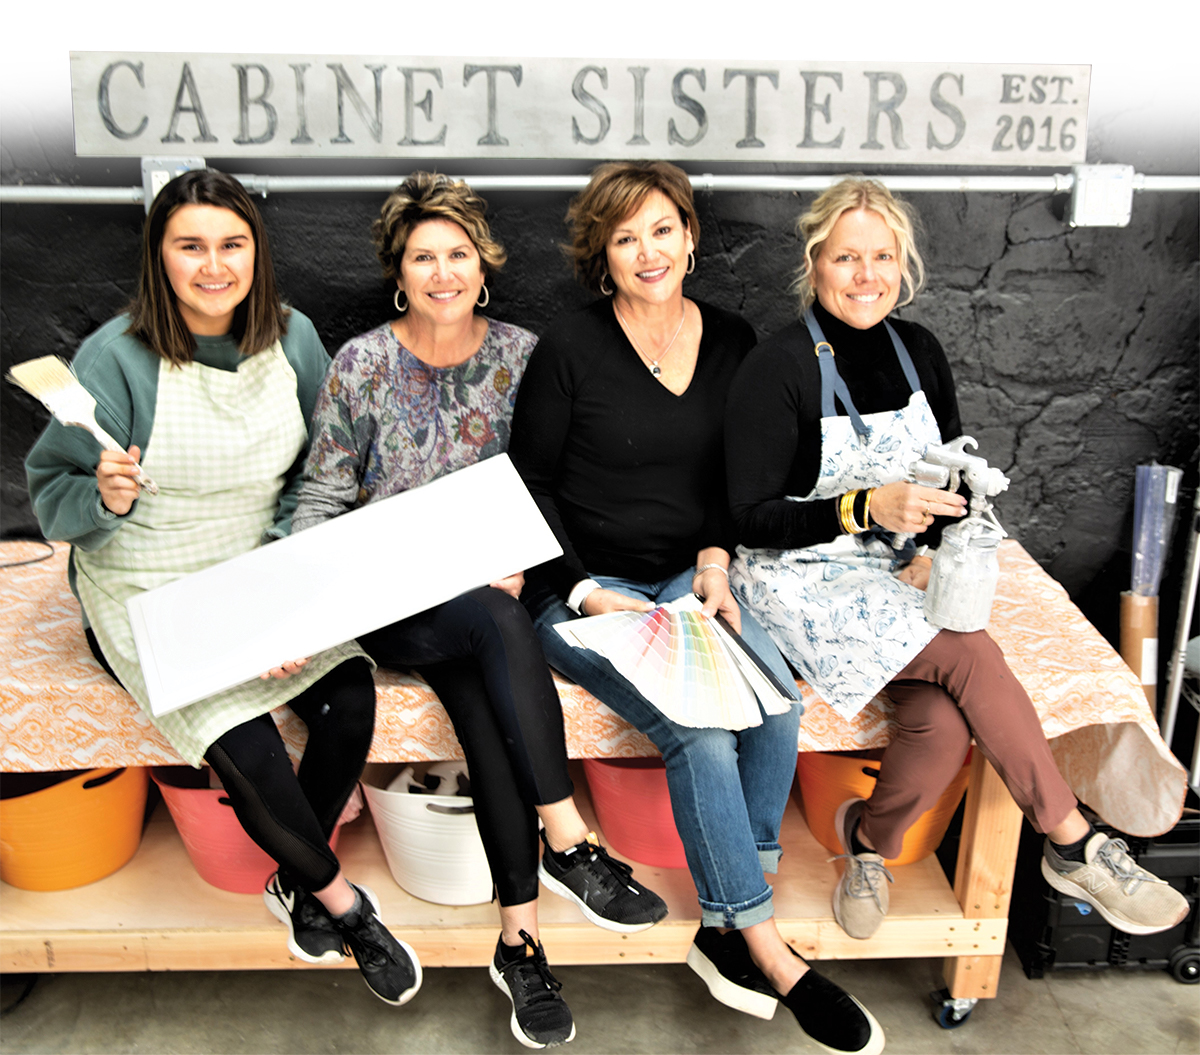 Cabinet Sisters Celebrates New Home